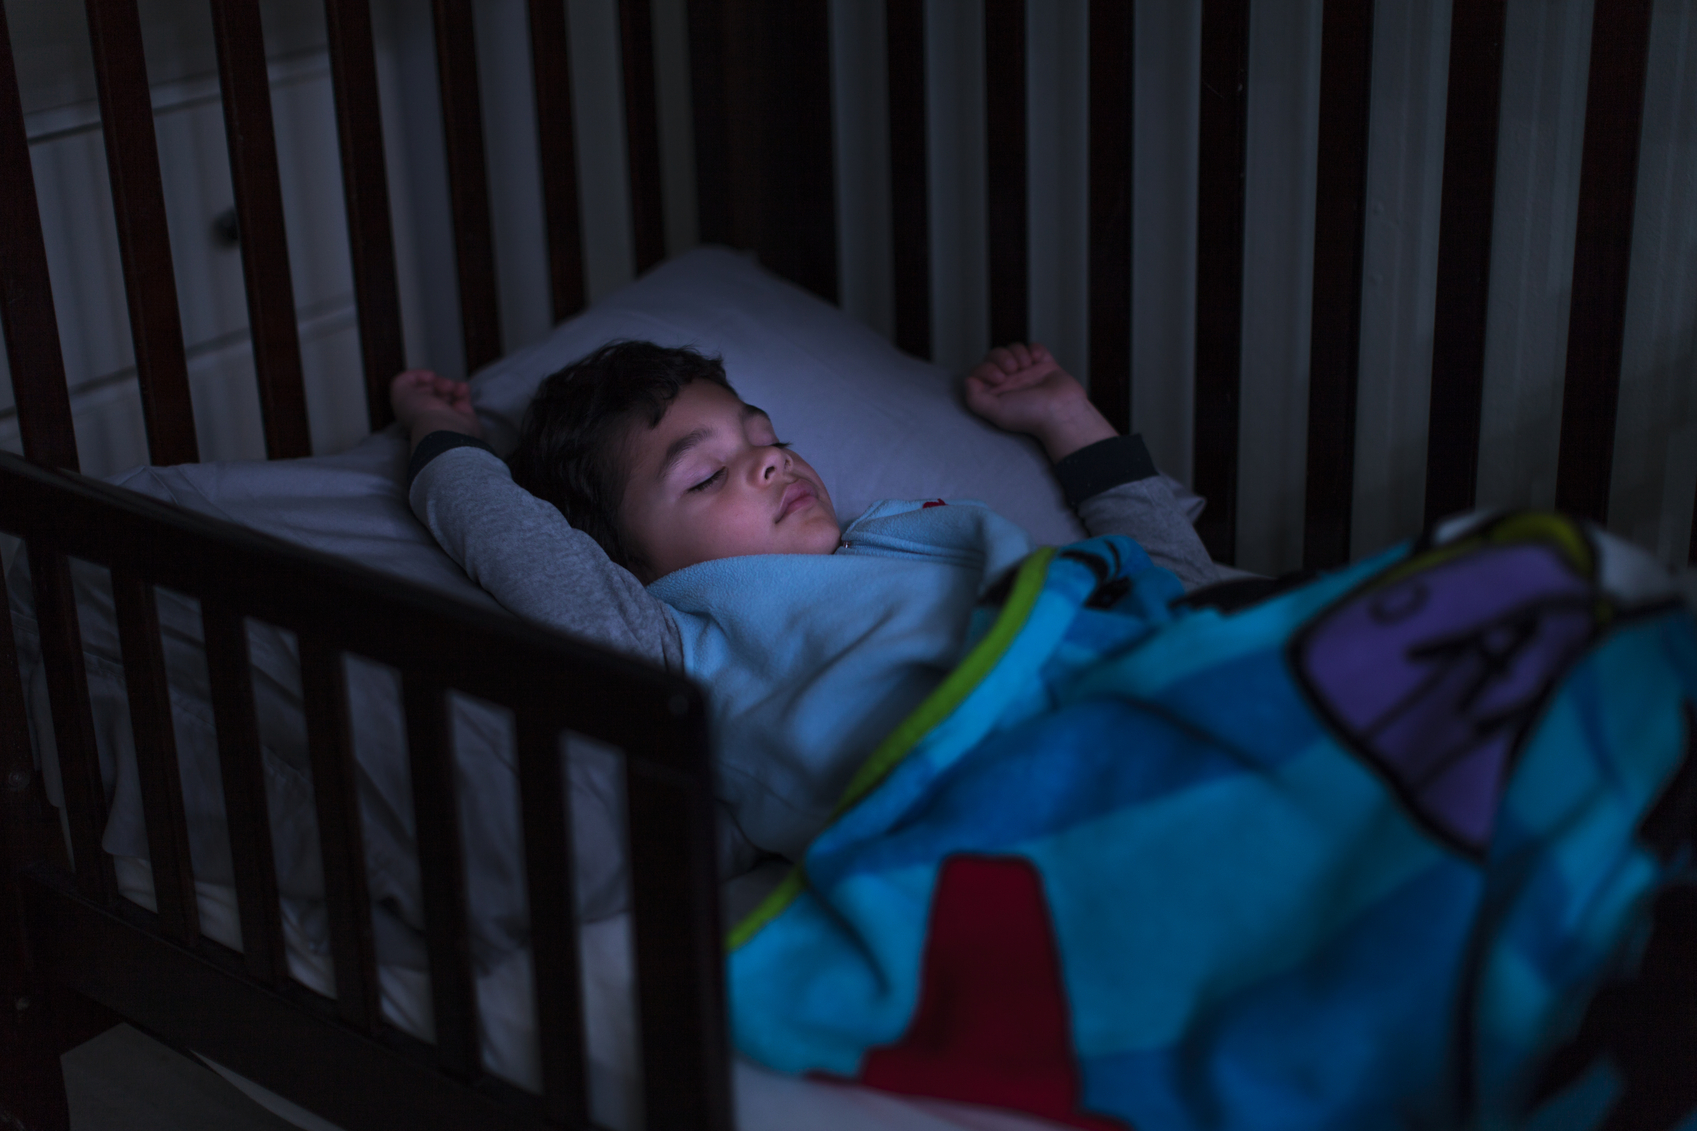 Stock photo of a young handsome boy sleeping in a bed with light on his face